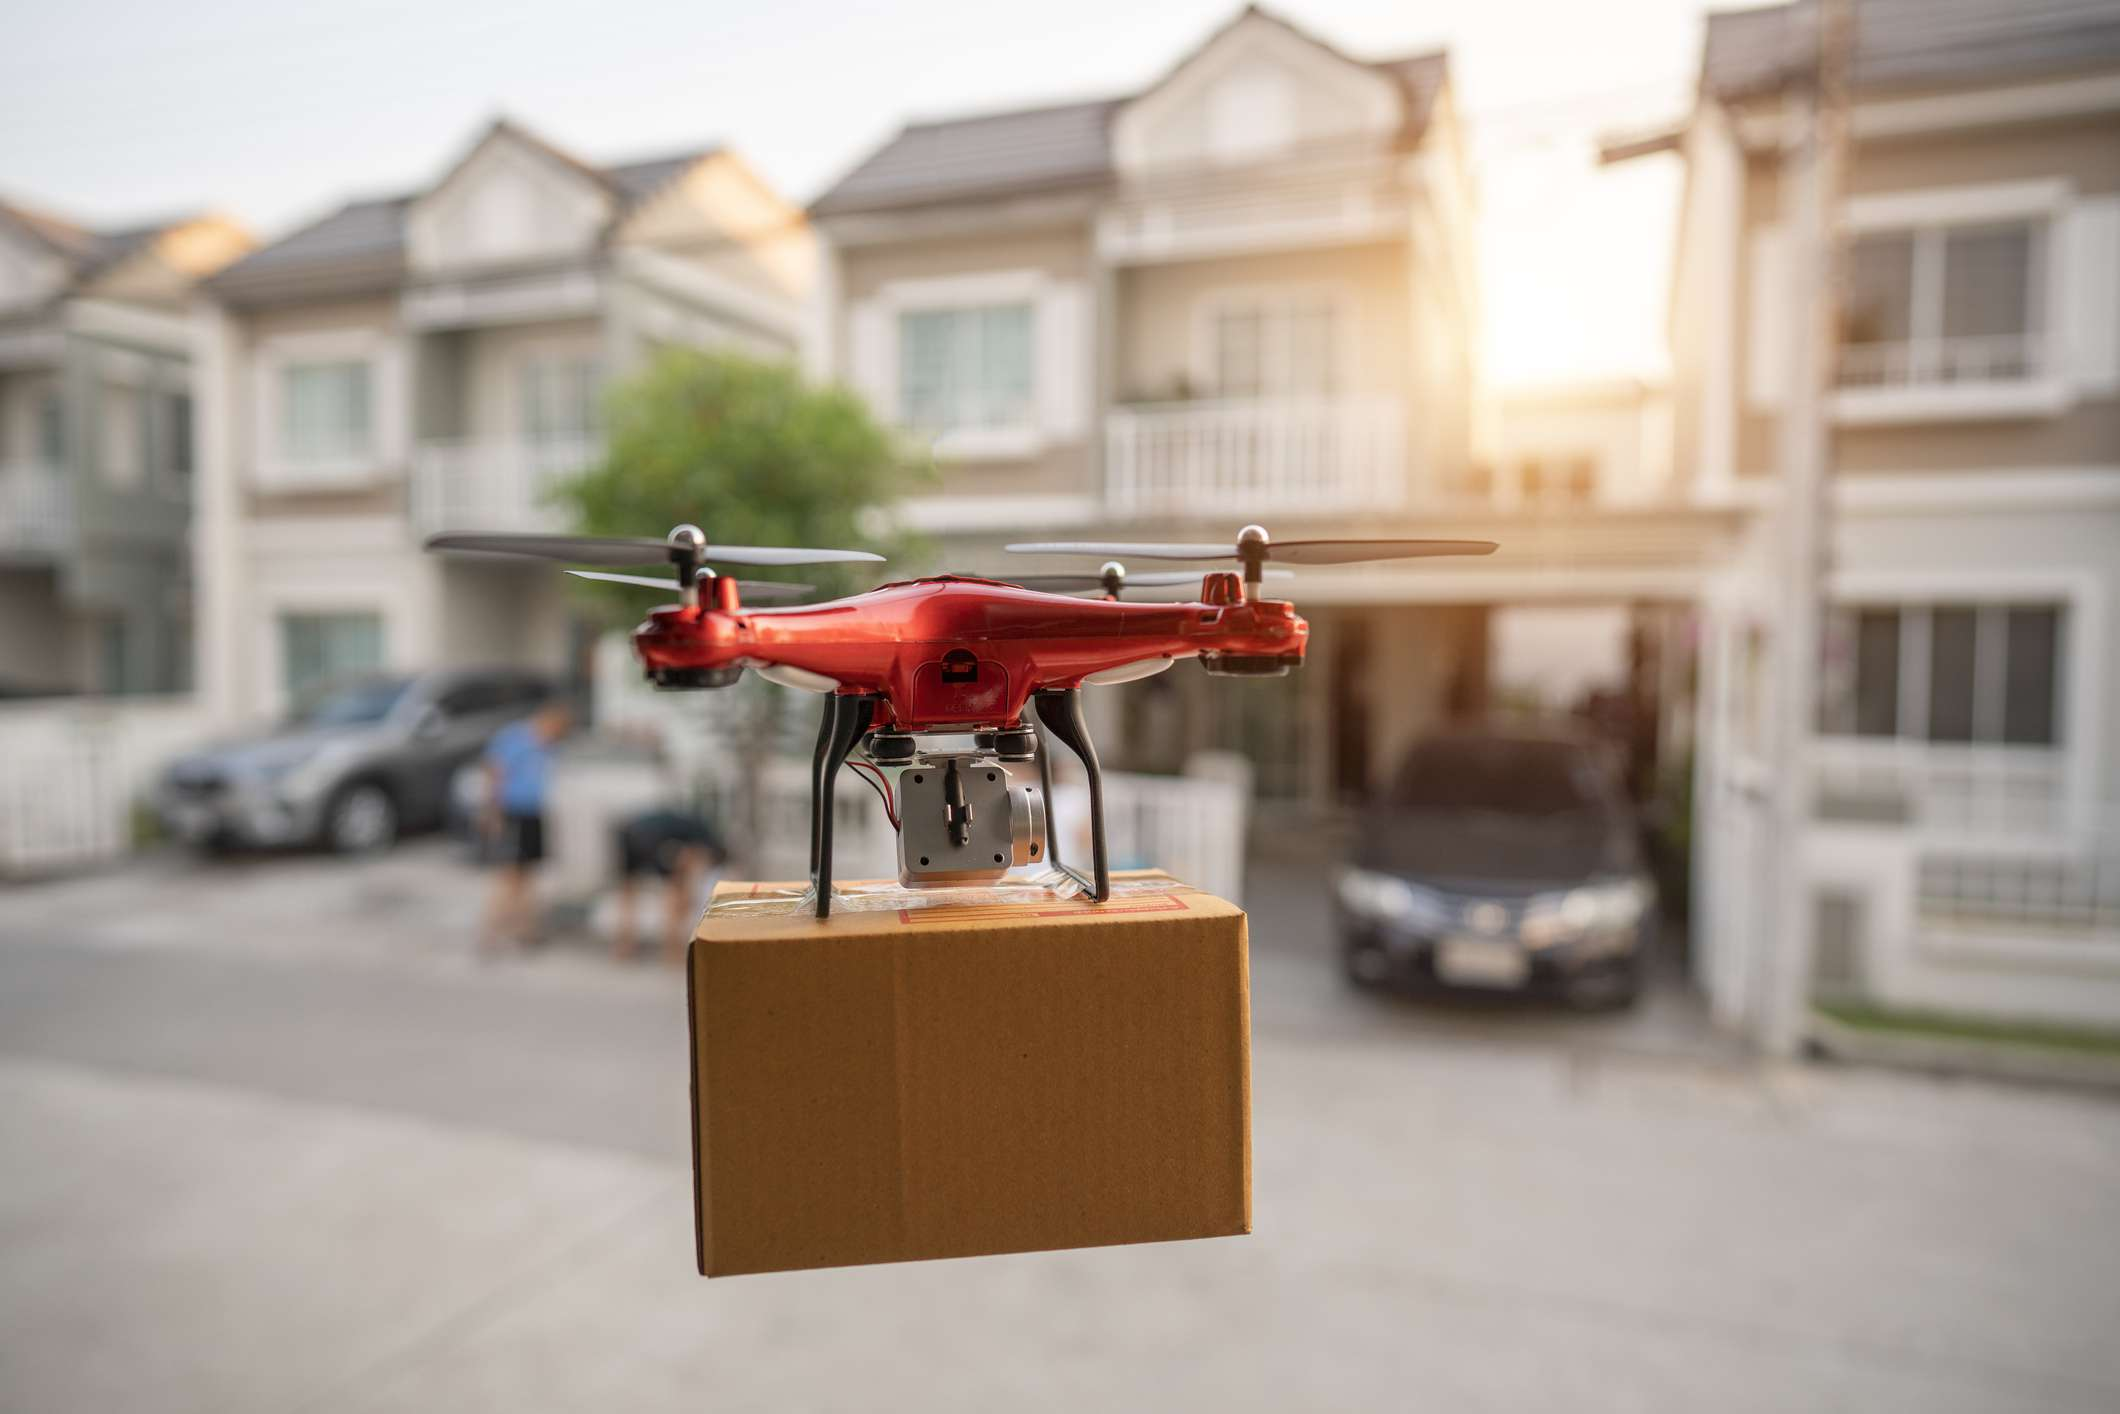 Delivery drone flying in New York City